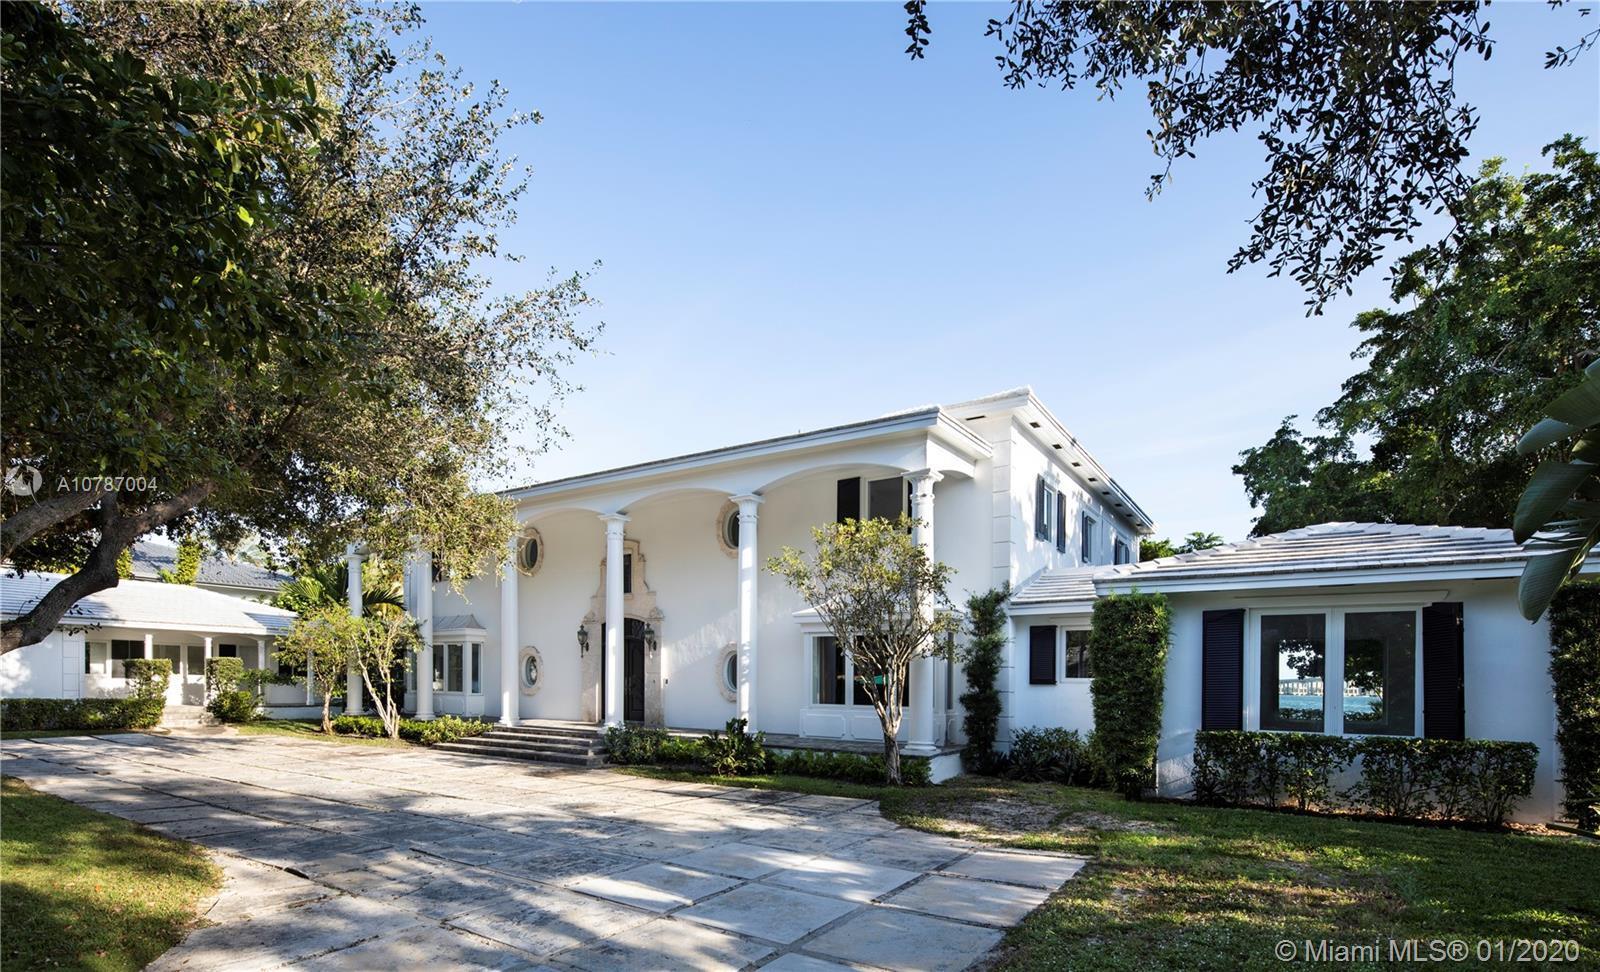 Live in a gorgeous classic bayfront 6 BR family home on over 3/4 of an acre and water frontage. The